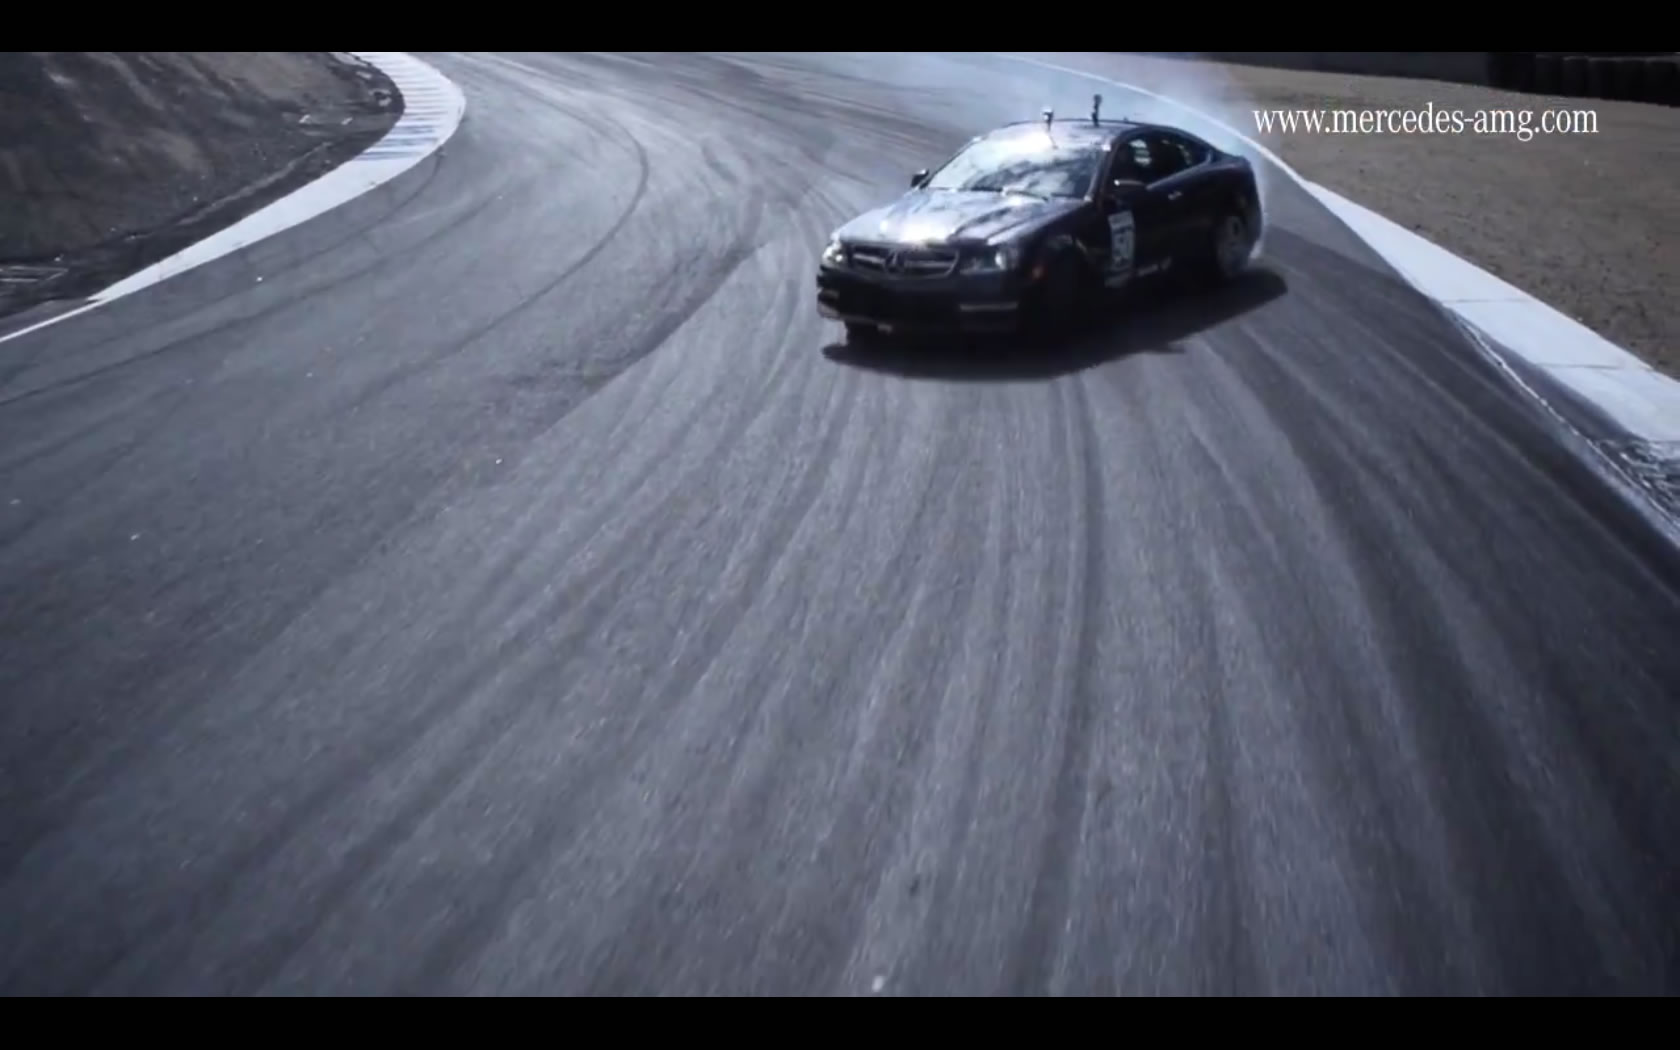 Mercedes C63 AMG Coupe Drifting the Corkscrew - Video Update